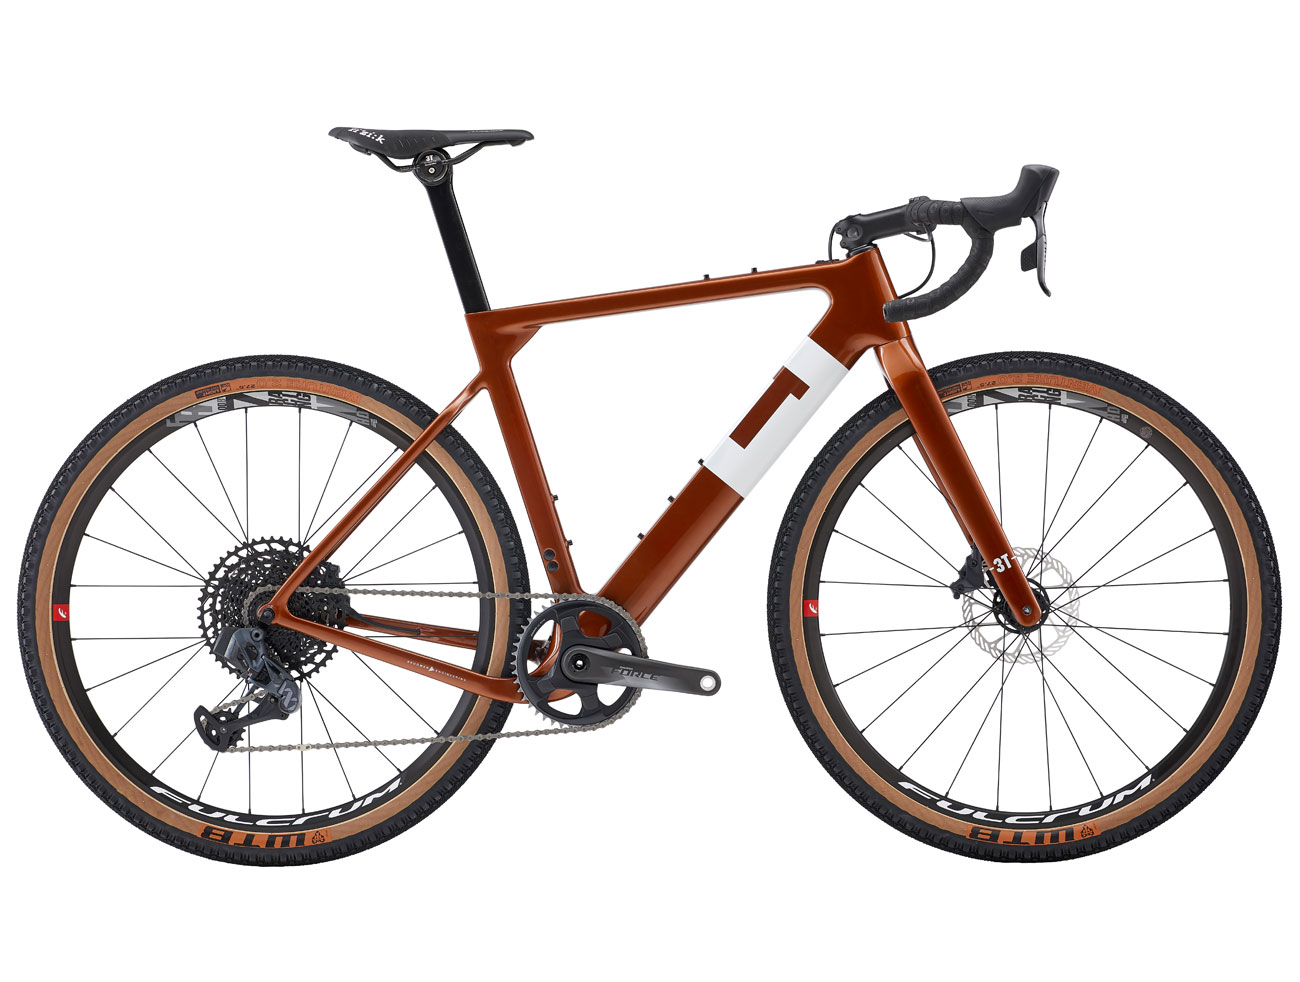 3T's Exploro Gets Friendlier Pricepoints with Rival, GRX and AXS Mullet Options 3